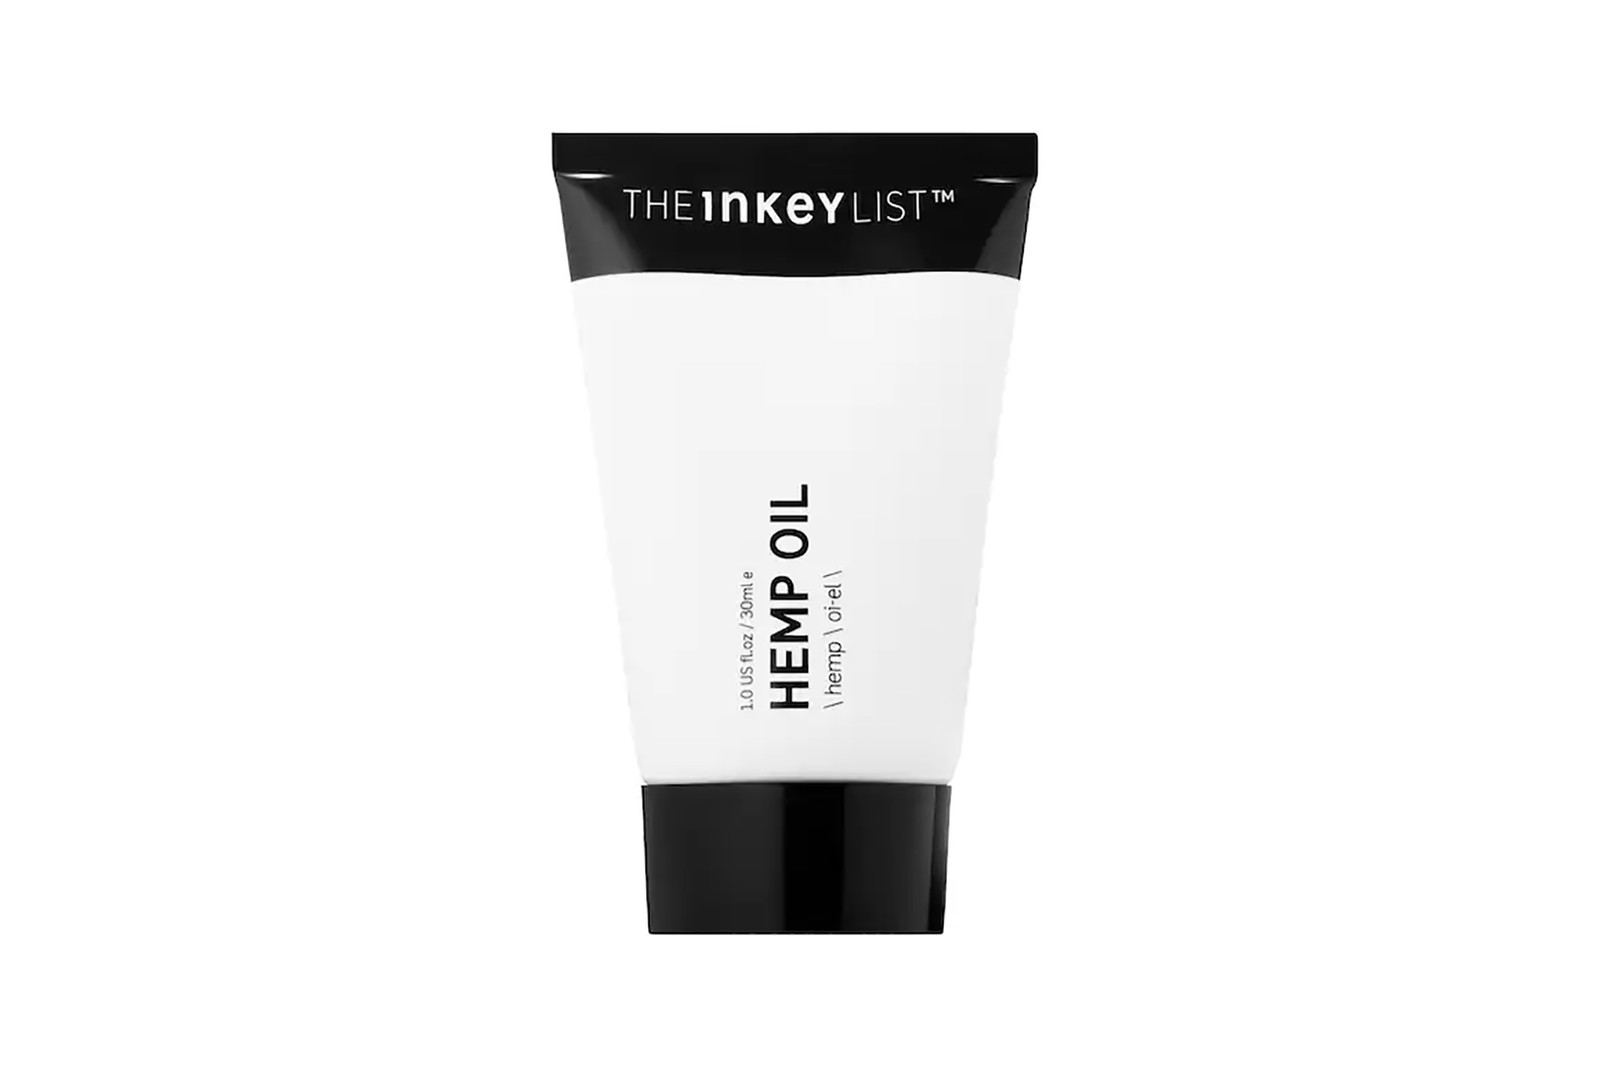 the inkey list skincare clean beauty sustainability moisturizers serums cleansers